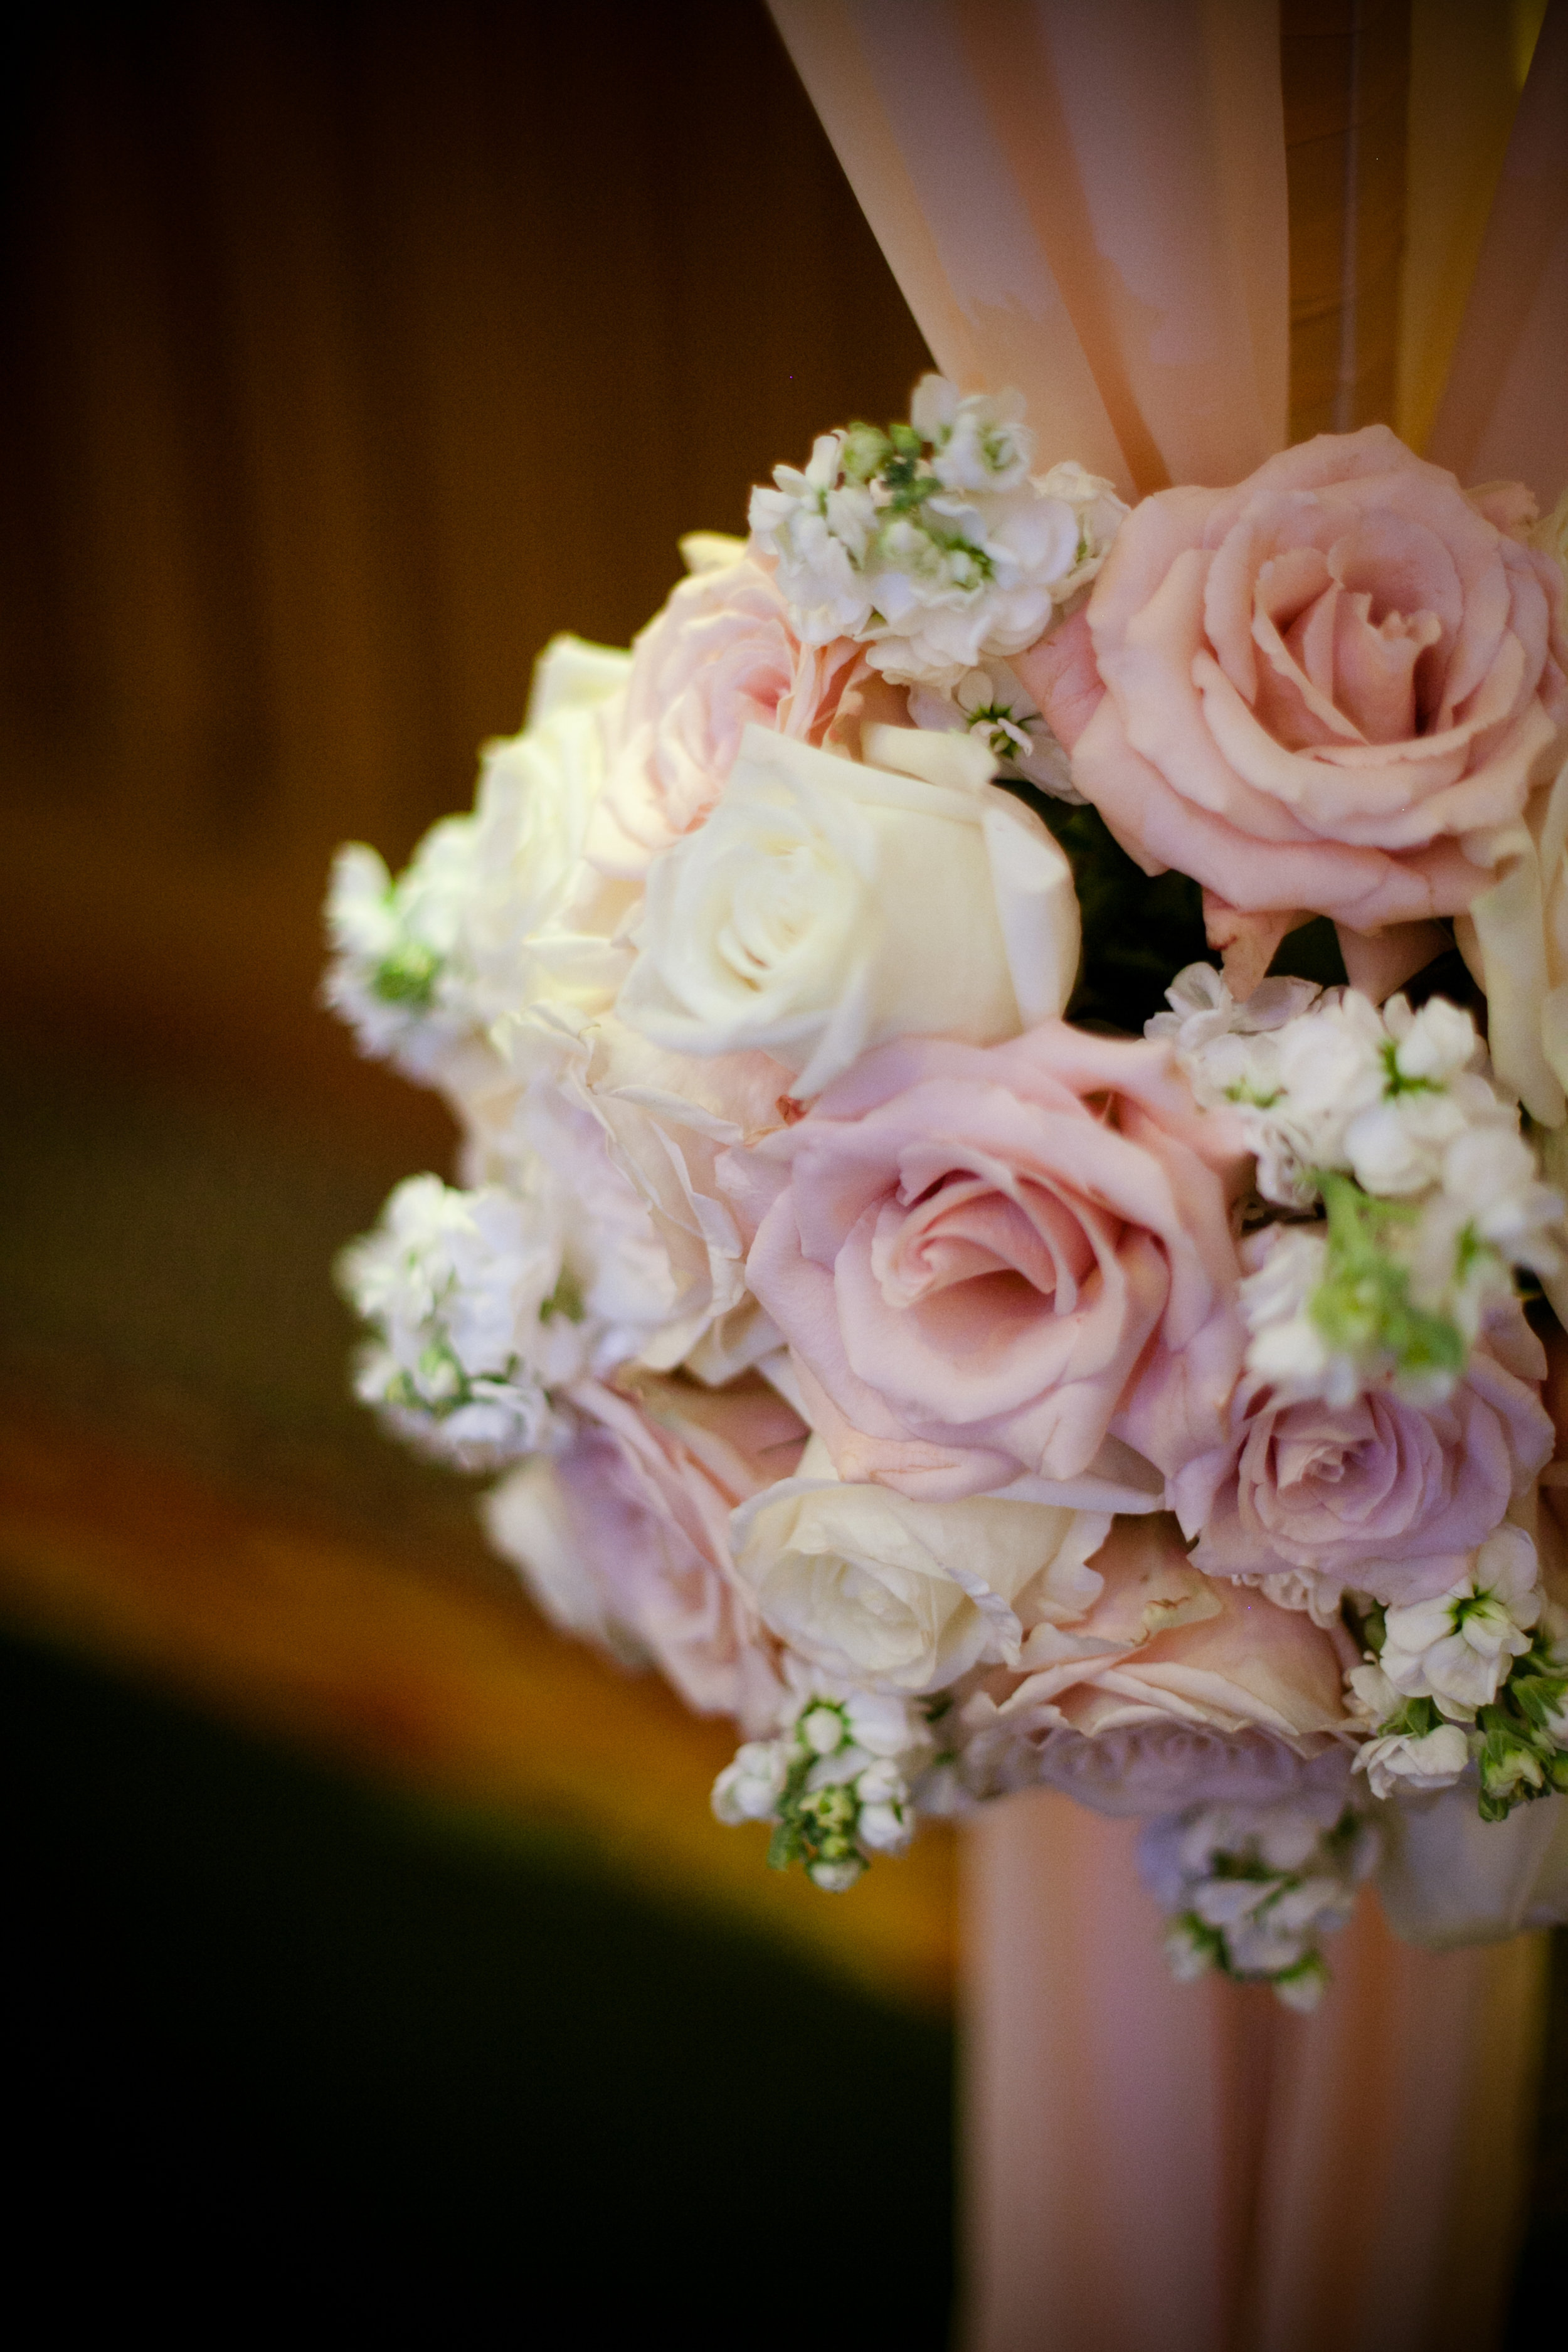 14 flowers on the chuppah pink and white roses pink and white florals ceremony decor Christine Johnson Photography Life Design Events.jpg